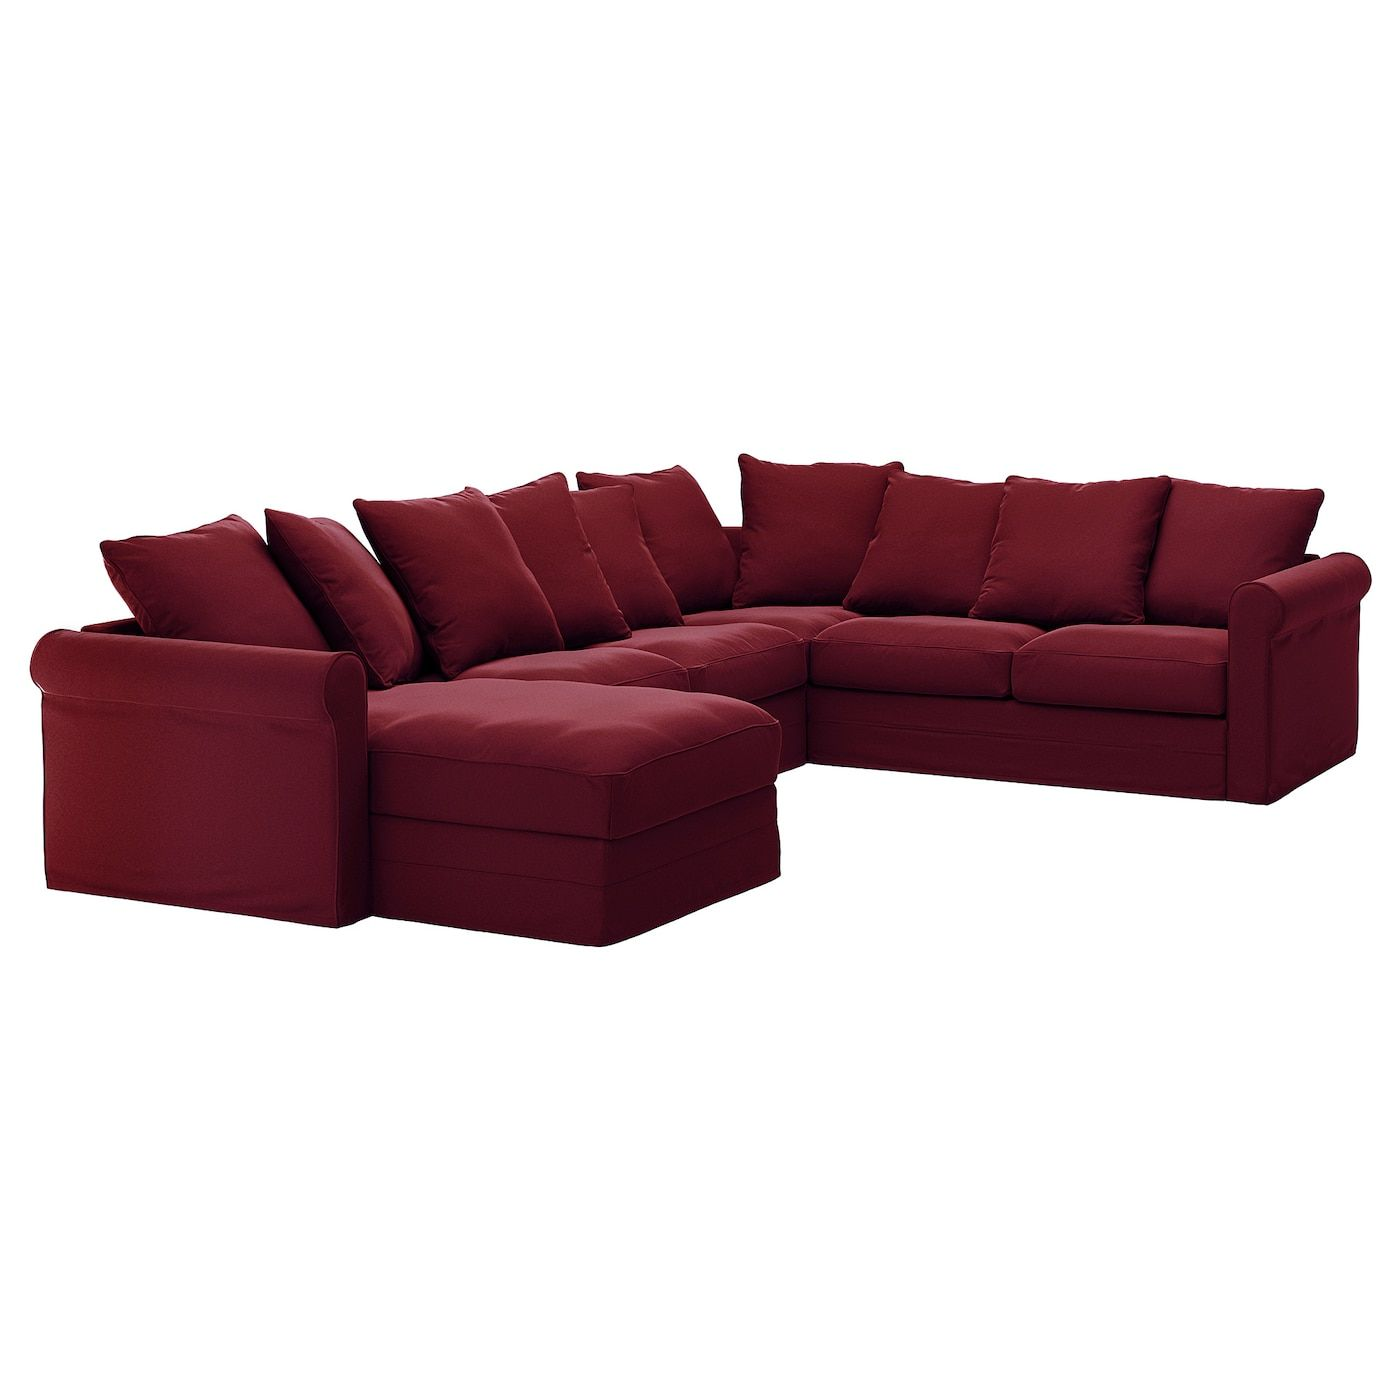 Ikea Gronlid Cover For Sectional 5 Seat With Chaise Ljungen